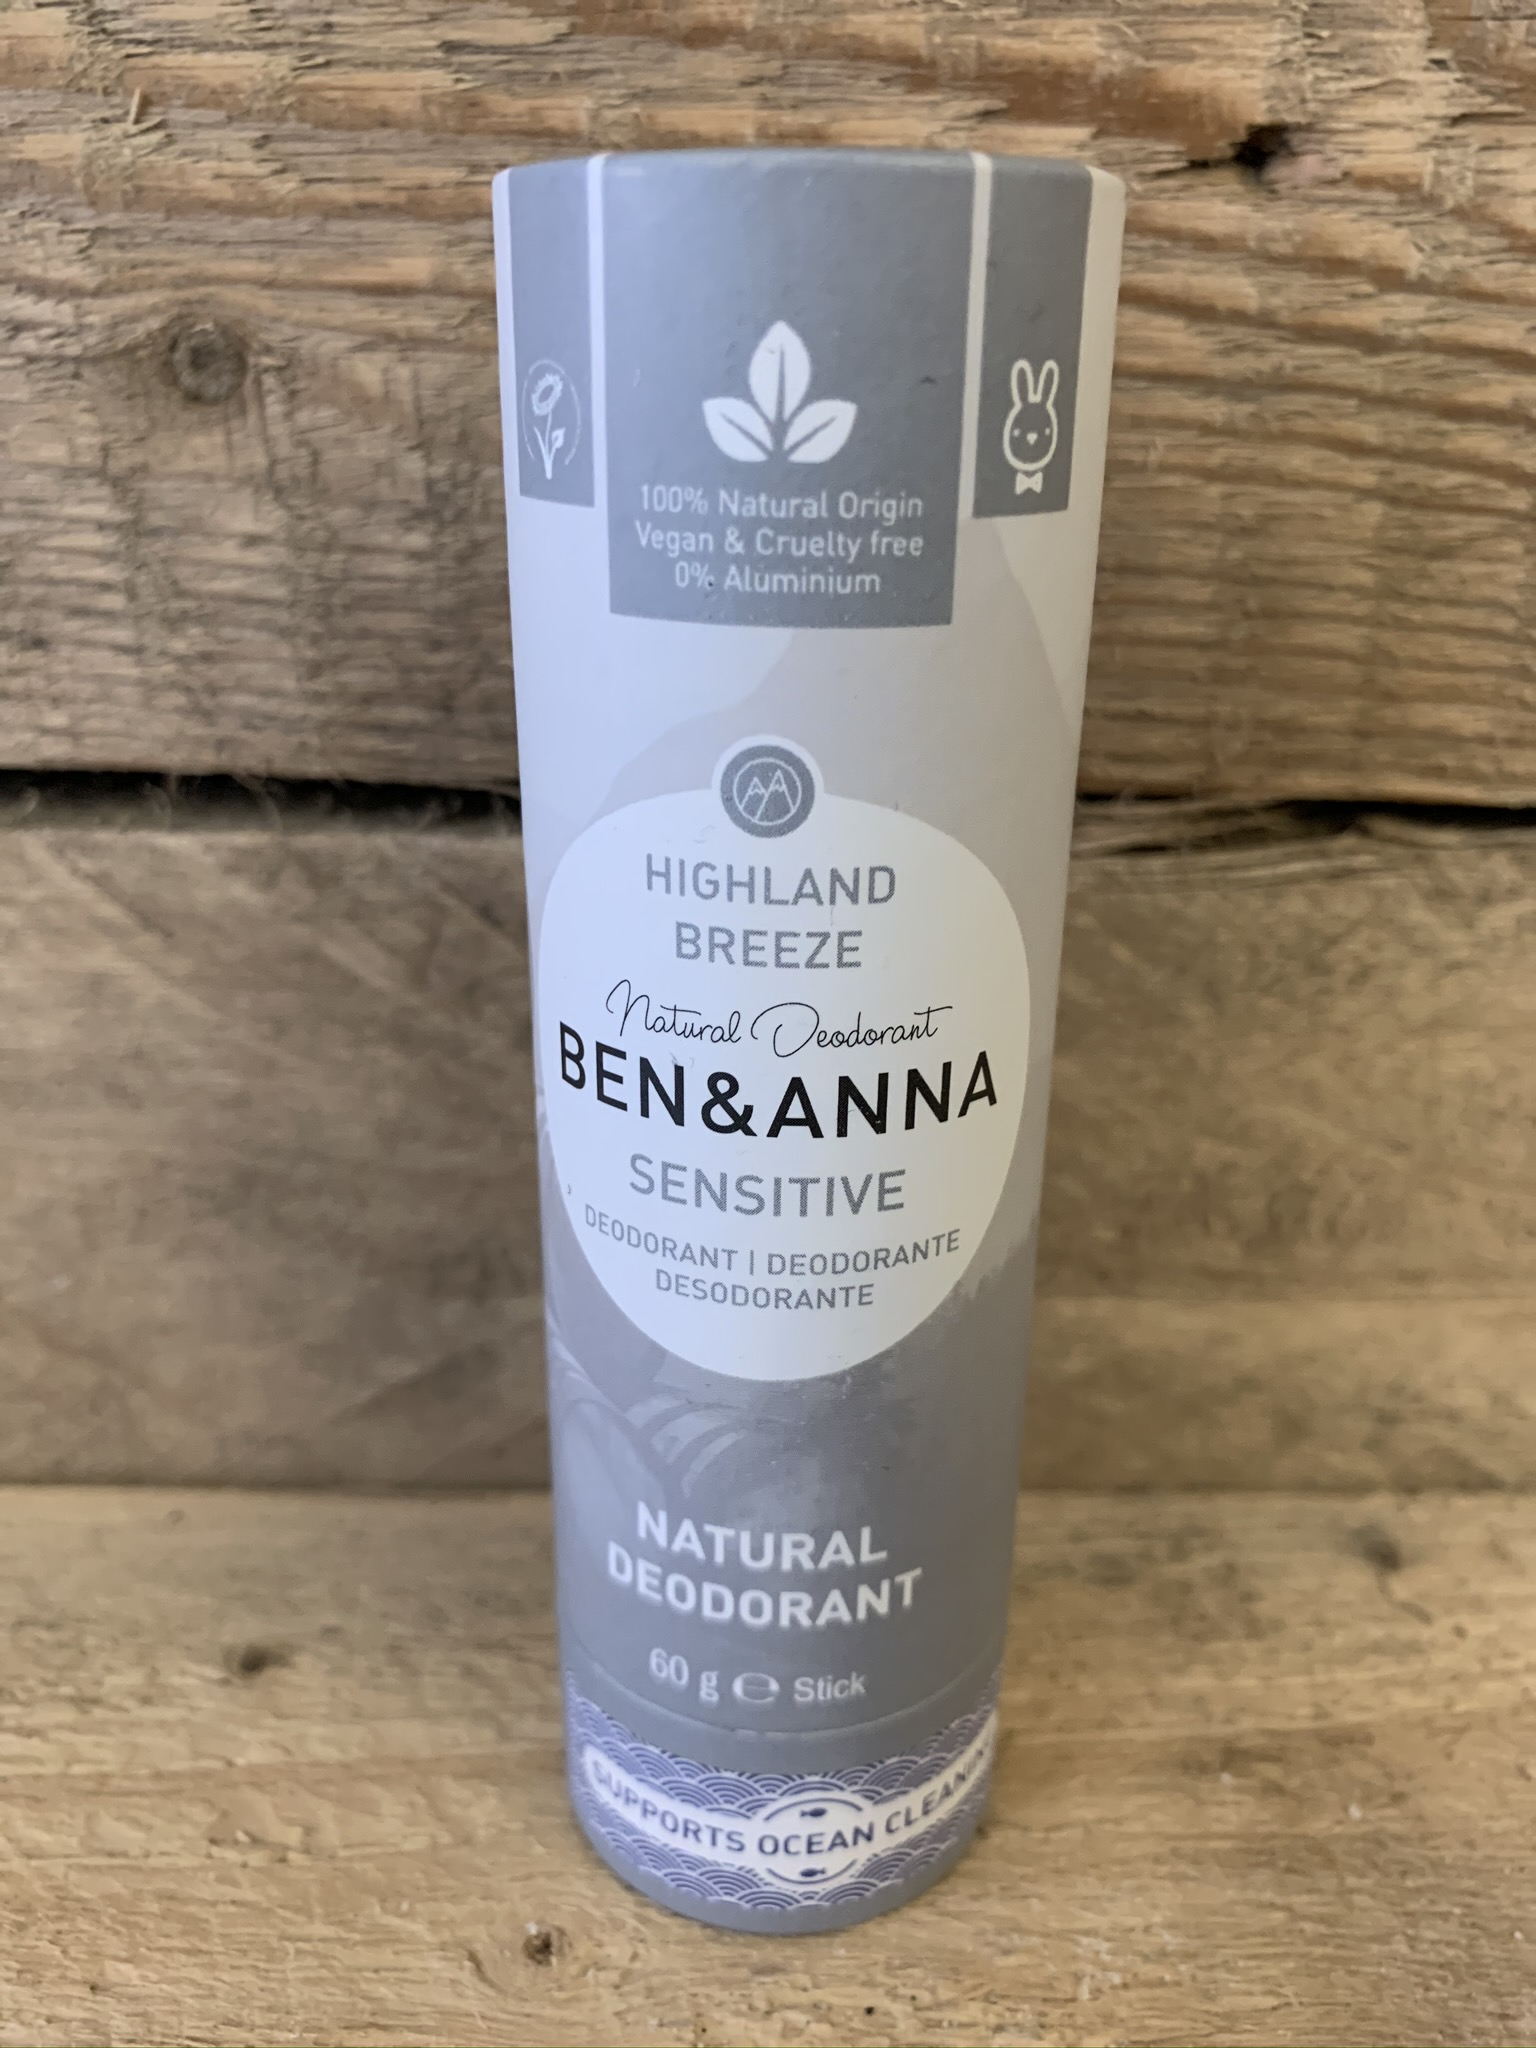 Ben & Anna Sensitive Highland Breeze Natural Deodorant Stick